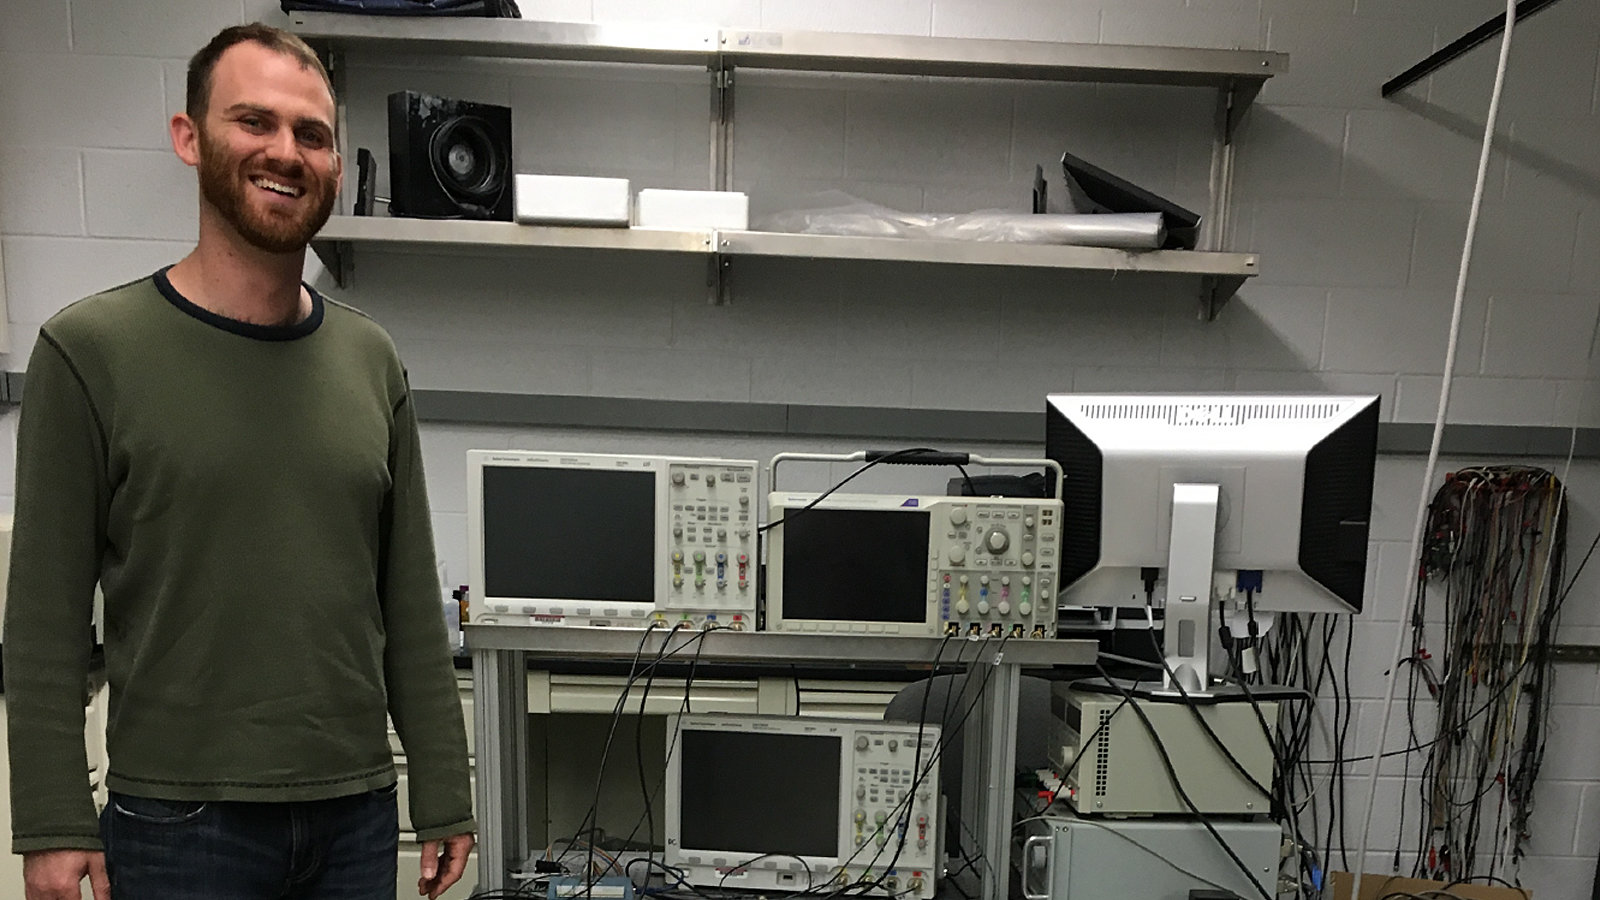 A man standing next to a experimental setup with a lot of cables and platines.